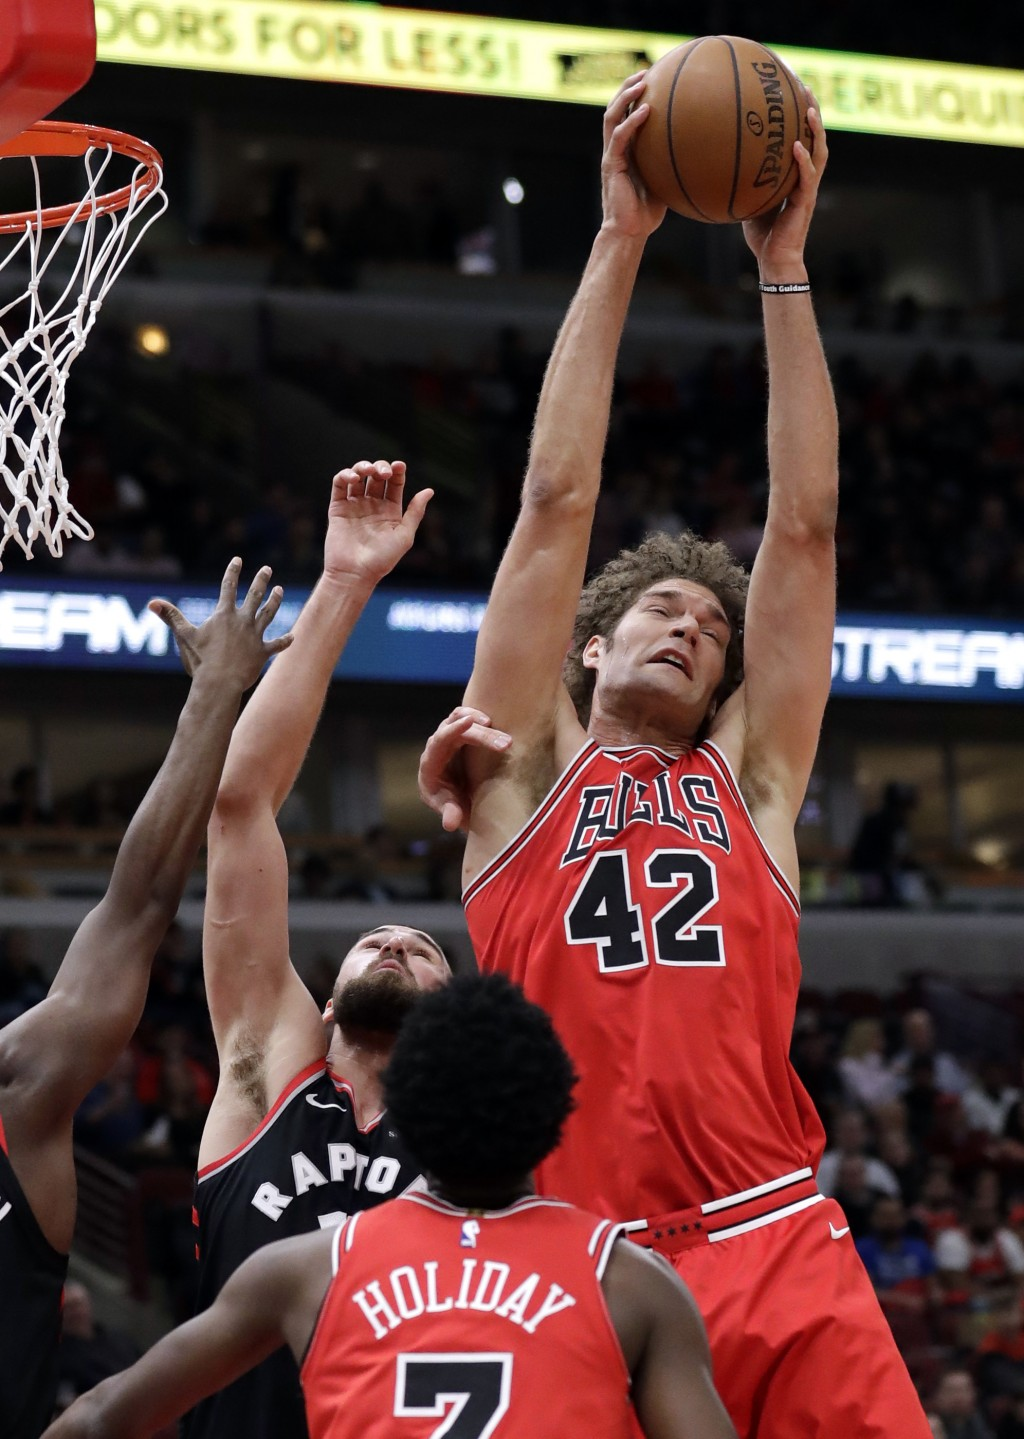 Chicago Bulls center Robin Lopez, right, rebounds a ball against Toronto Raptors center Jonas Valanciunas during the first half of an NBA basketball g